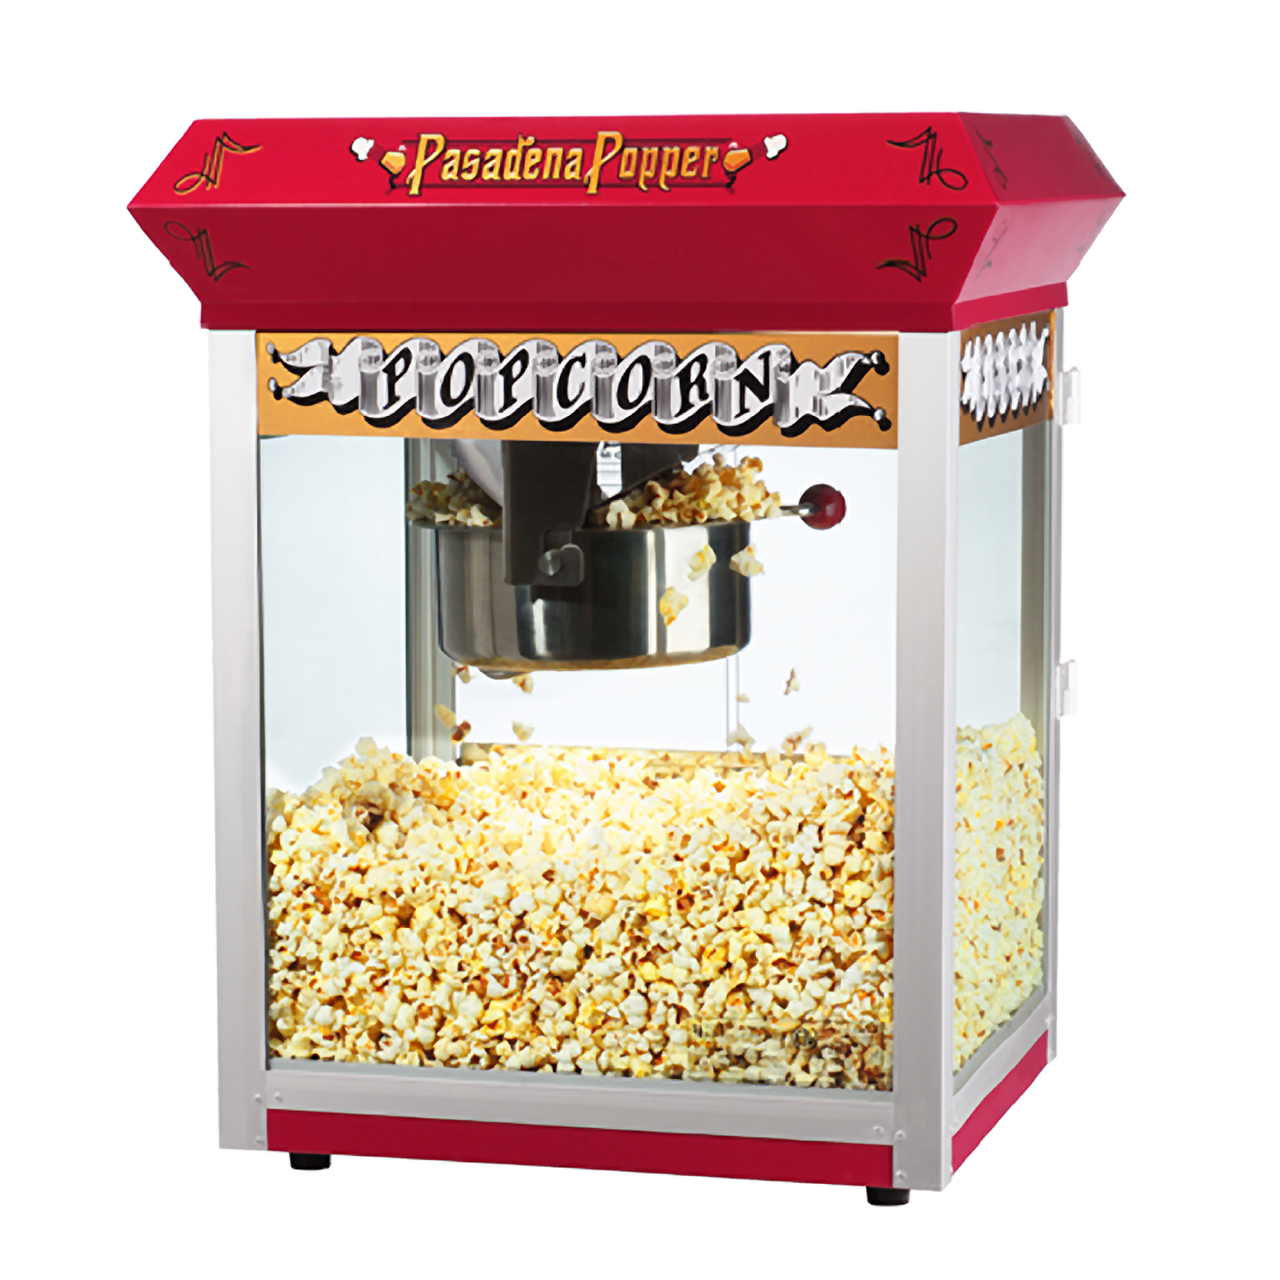 great northern pasadena red antique style popcorn popper machine 8 oz great northern popcorn - Popcorn Poppers